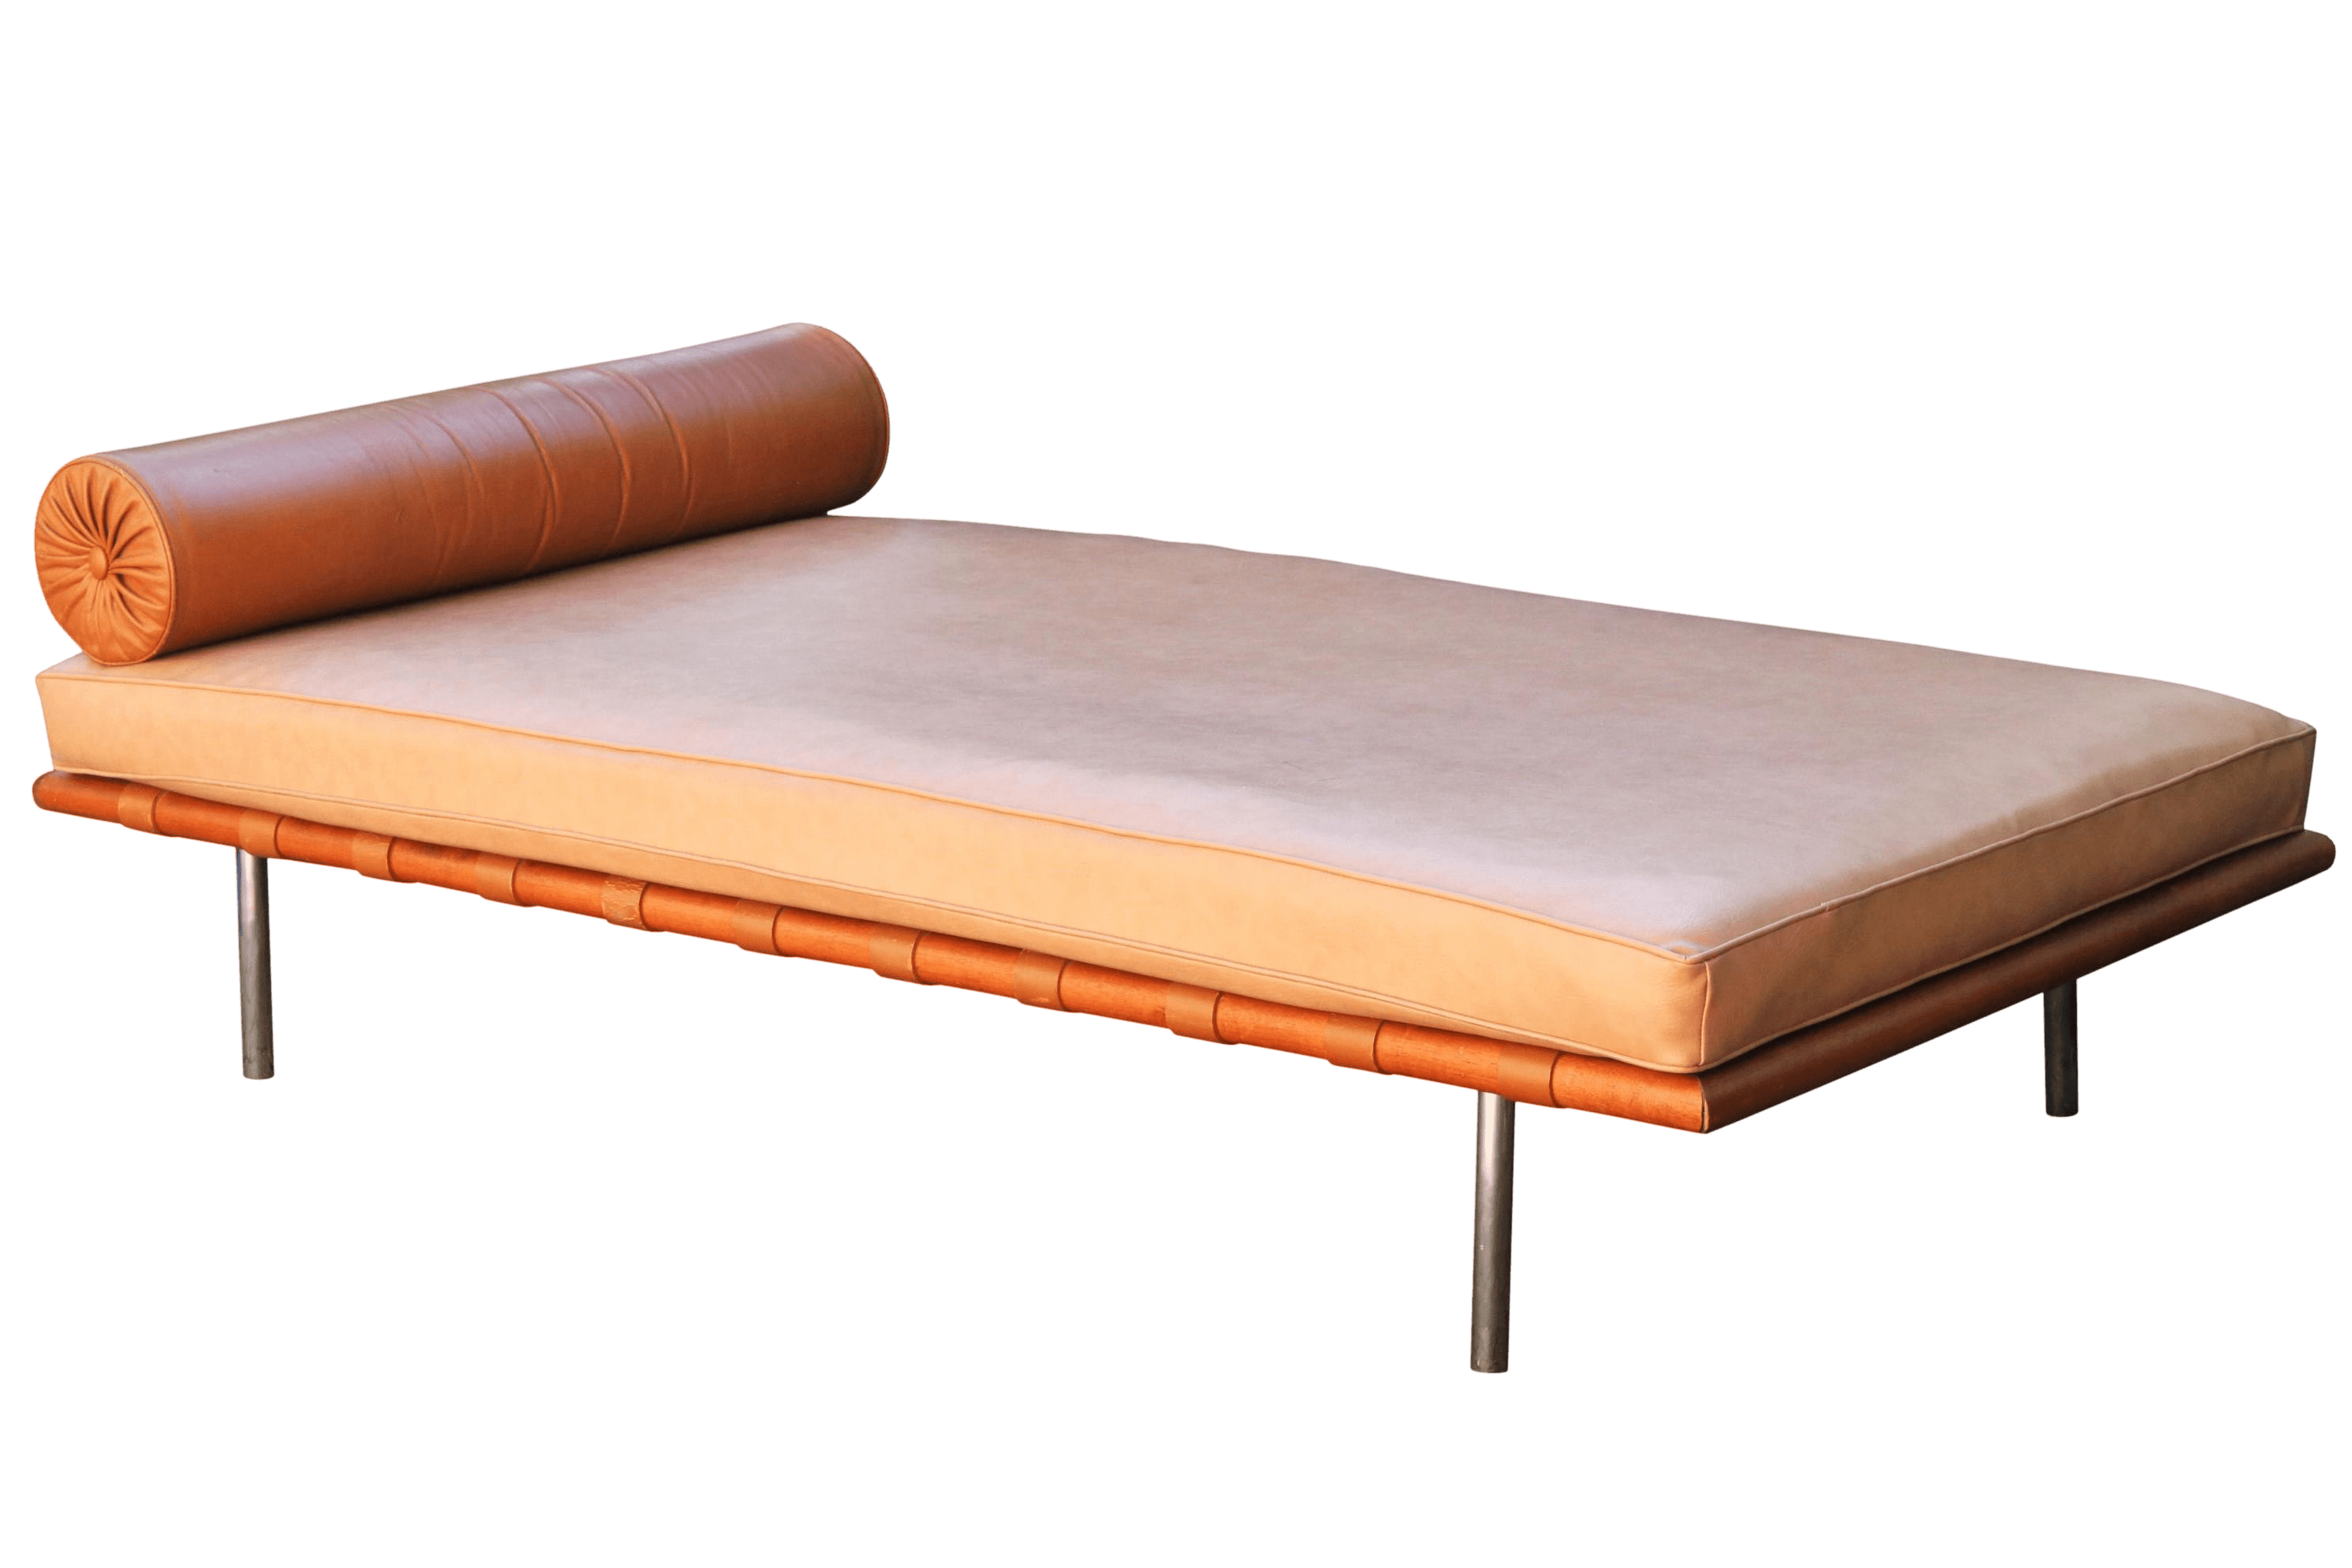 Barcelona Daybed Mies Van Der Rohe Attributed Barcelona Daybed In Brown Leather